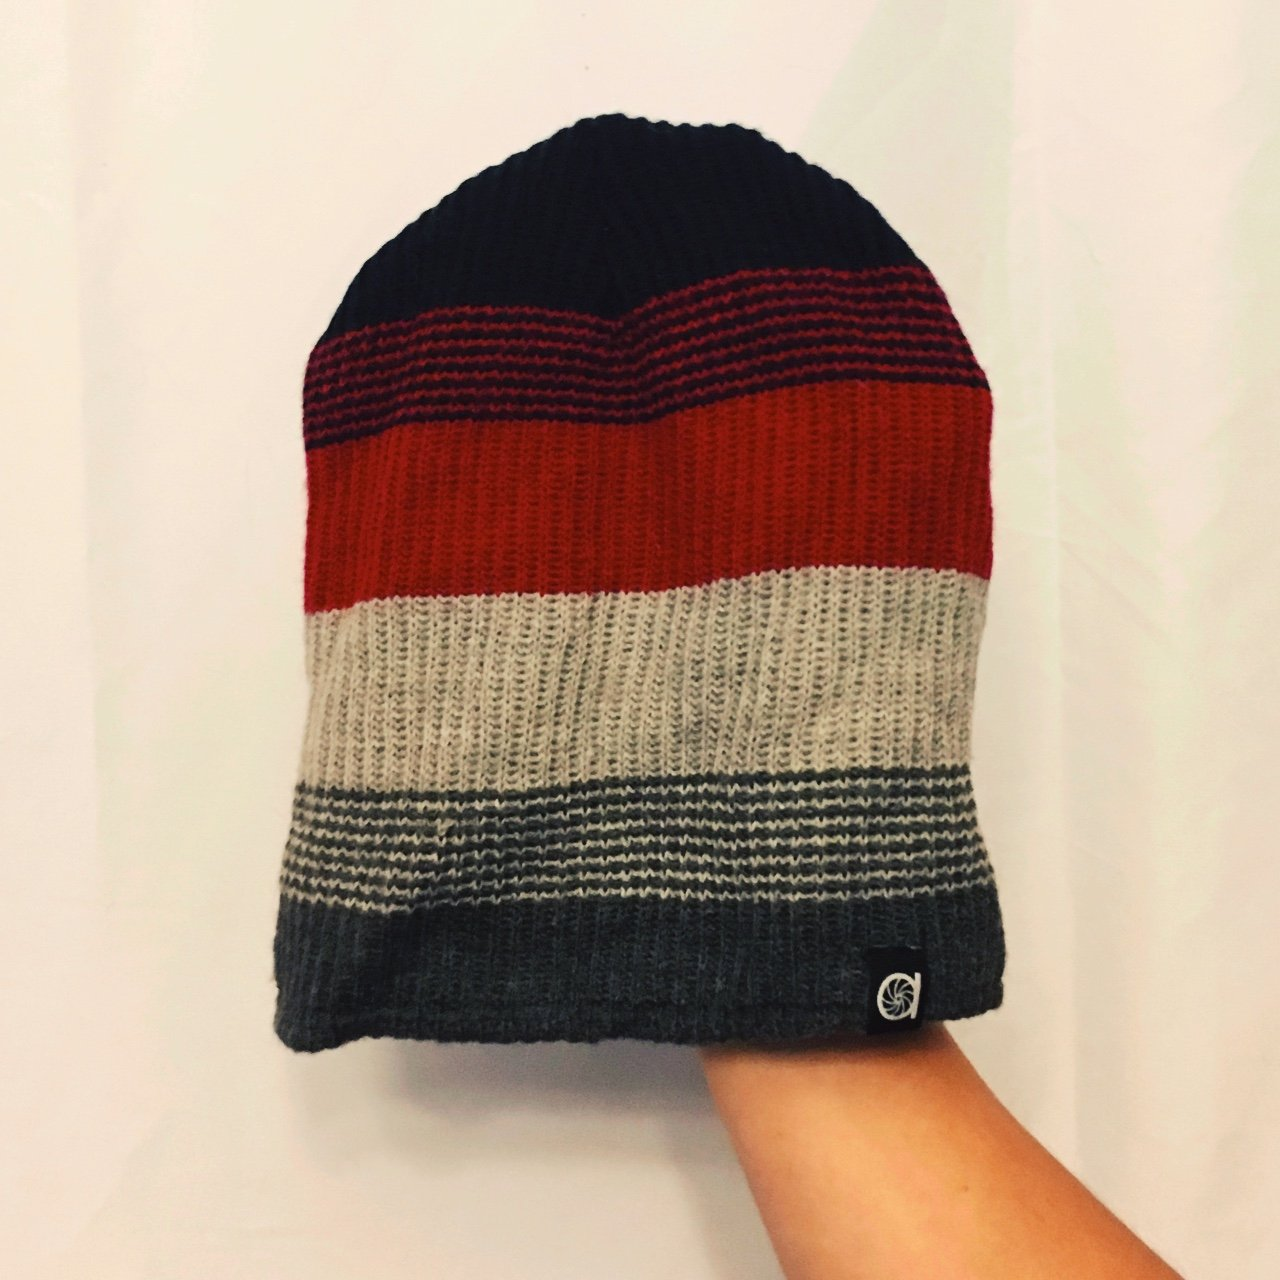 0a8a8ff8a7b Striped beanie.  beanie  zumiez  stripes - Depop